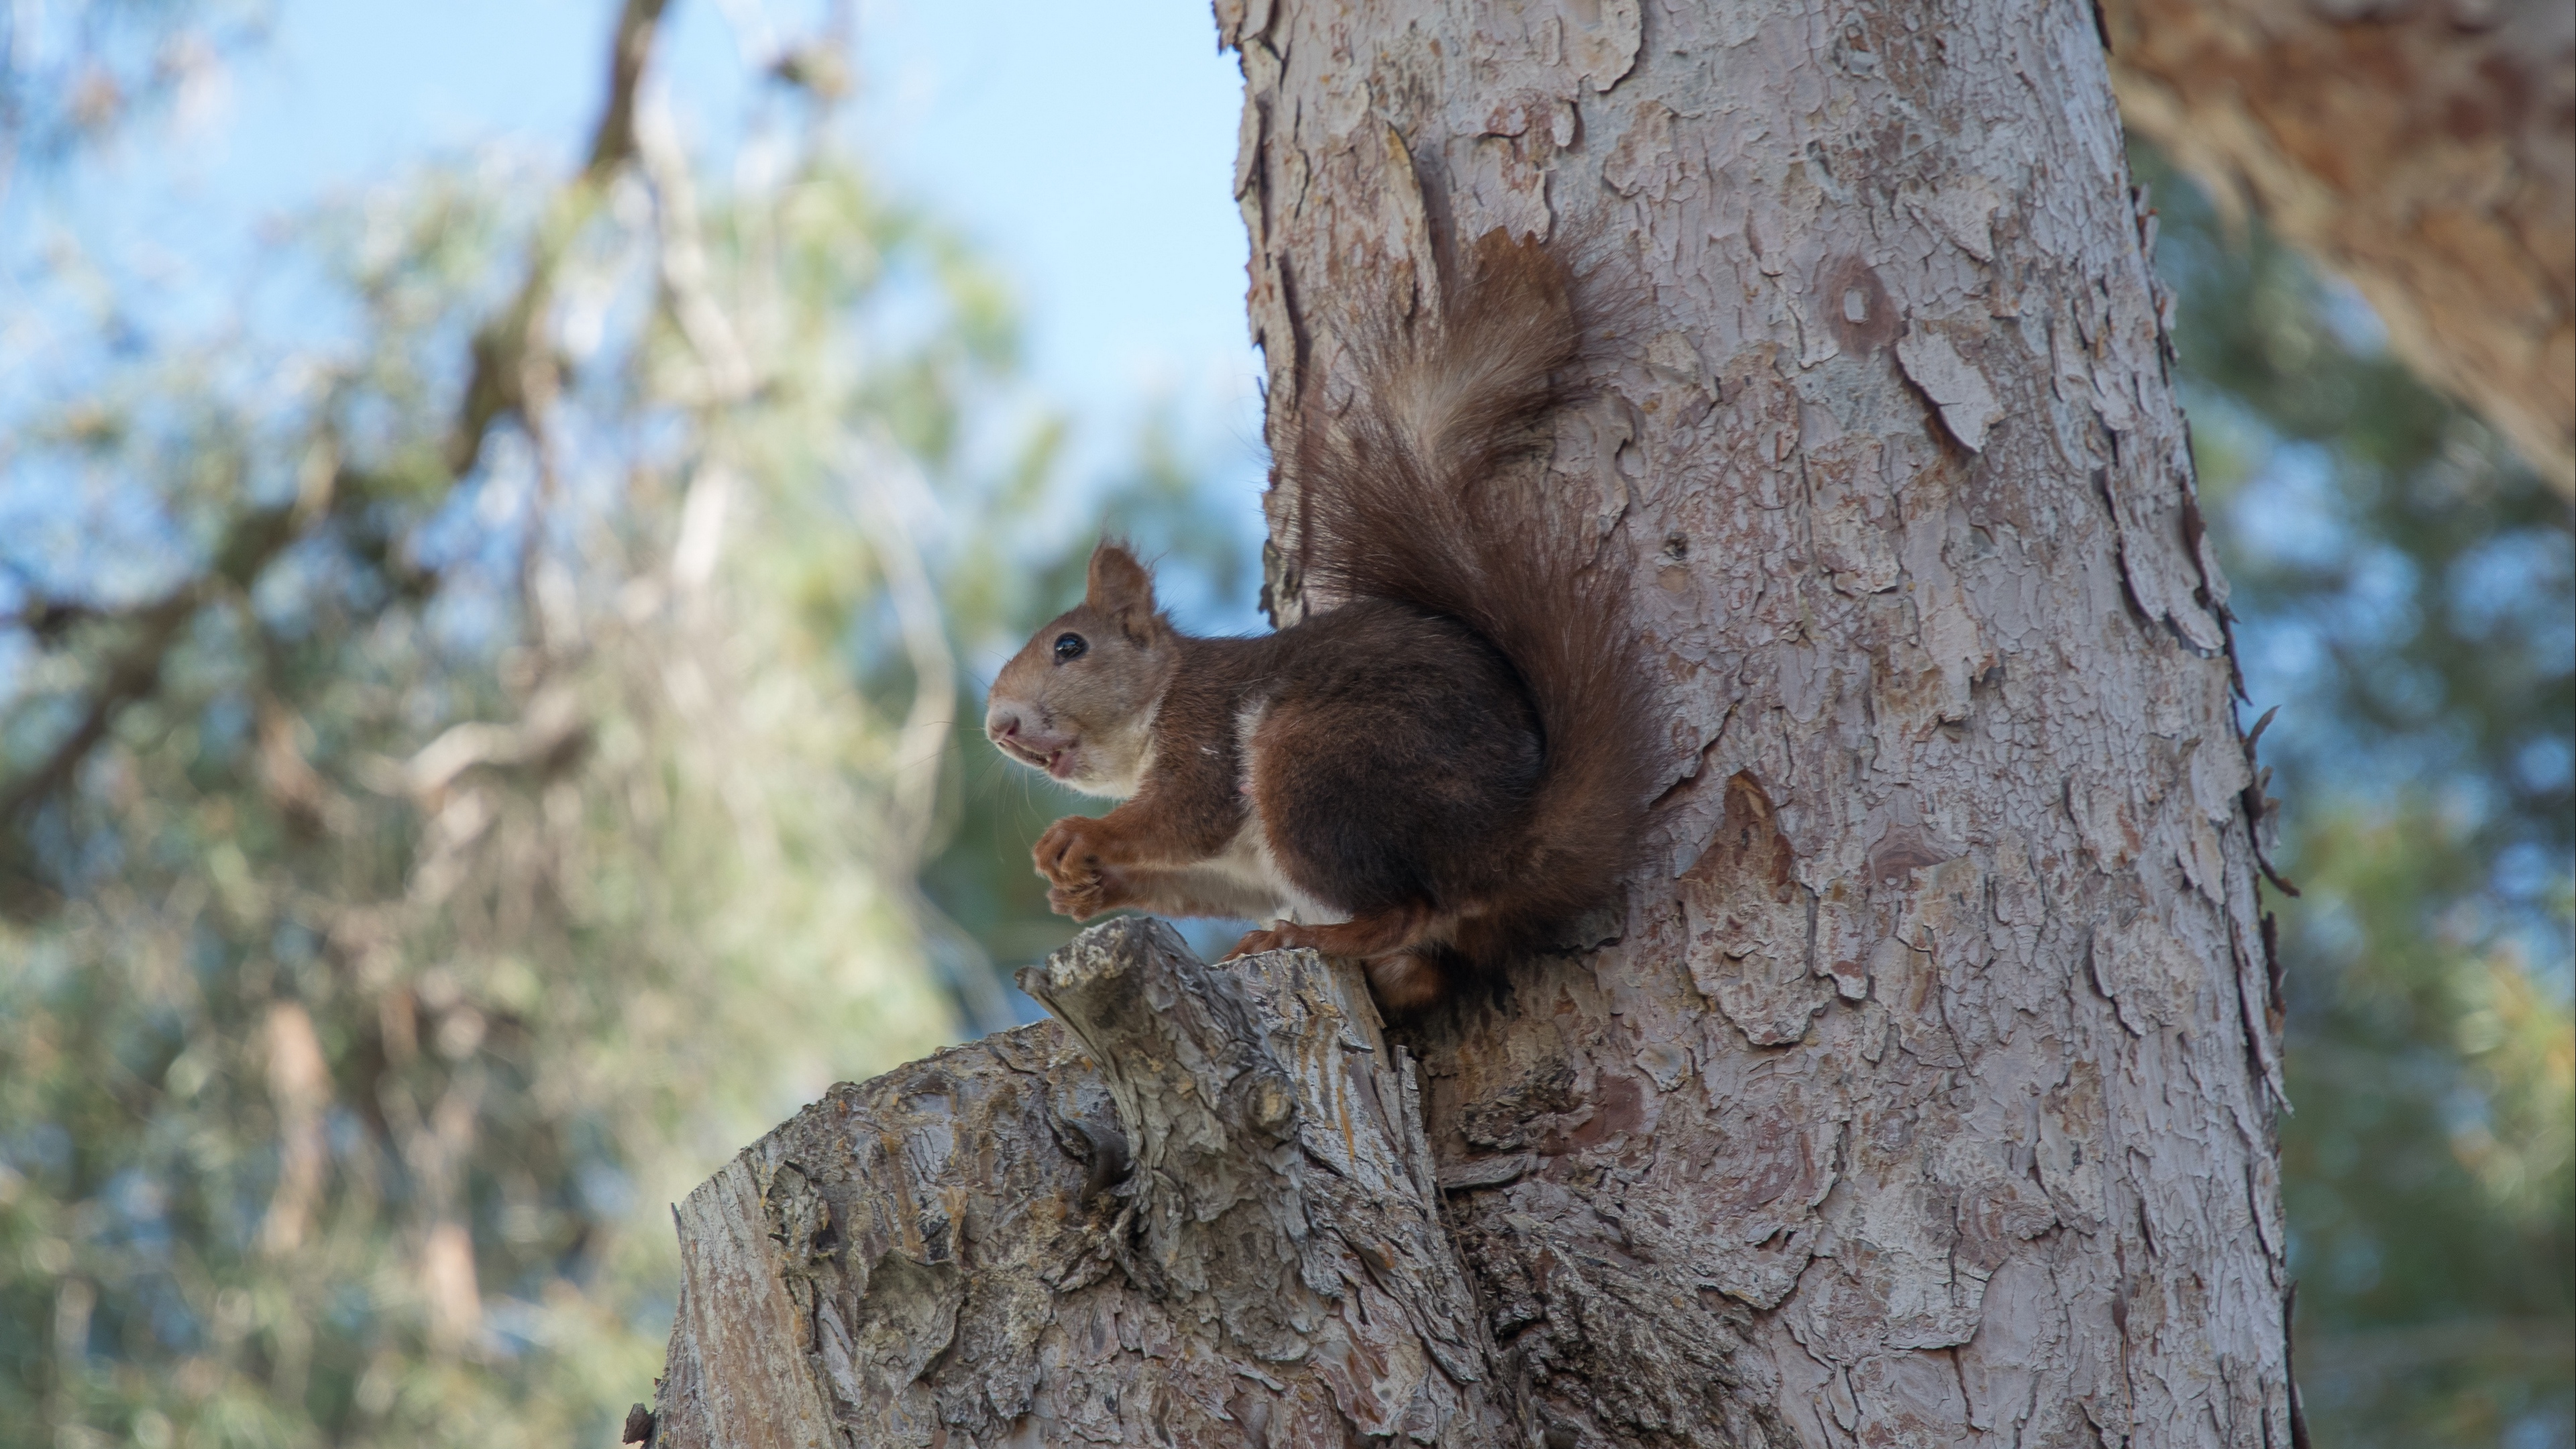 squirrel tree rodent 4k 1542243054 - squirrel, tree, rodent 4k - tree, Squirrel, rodent